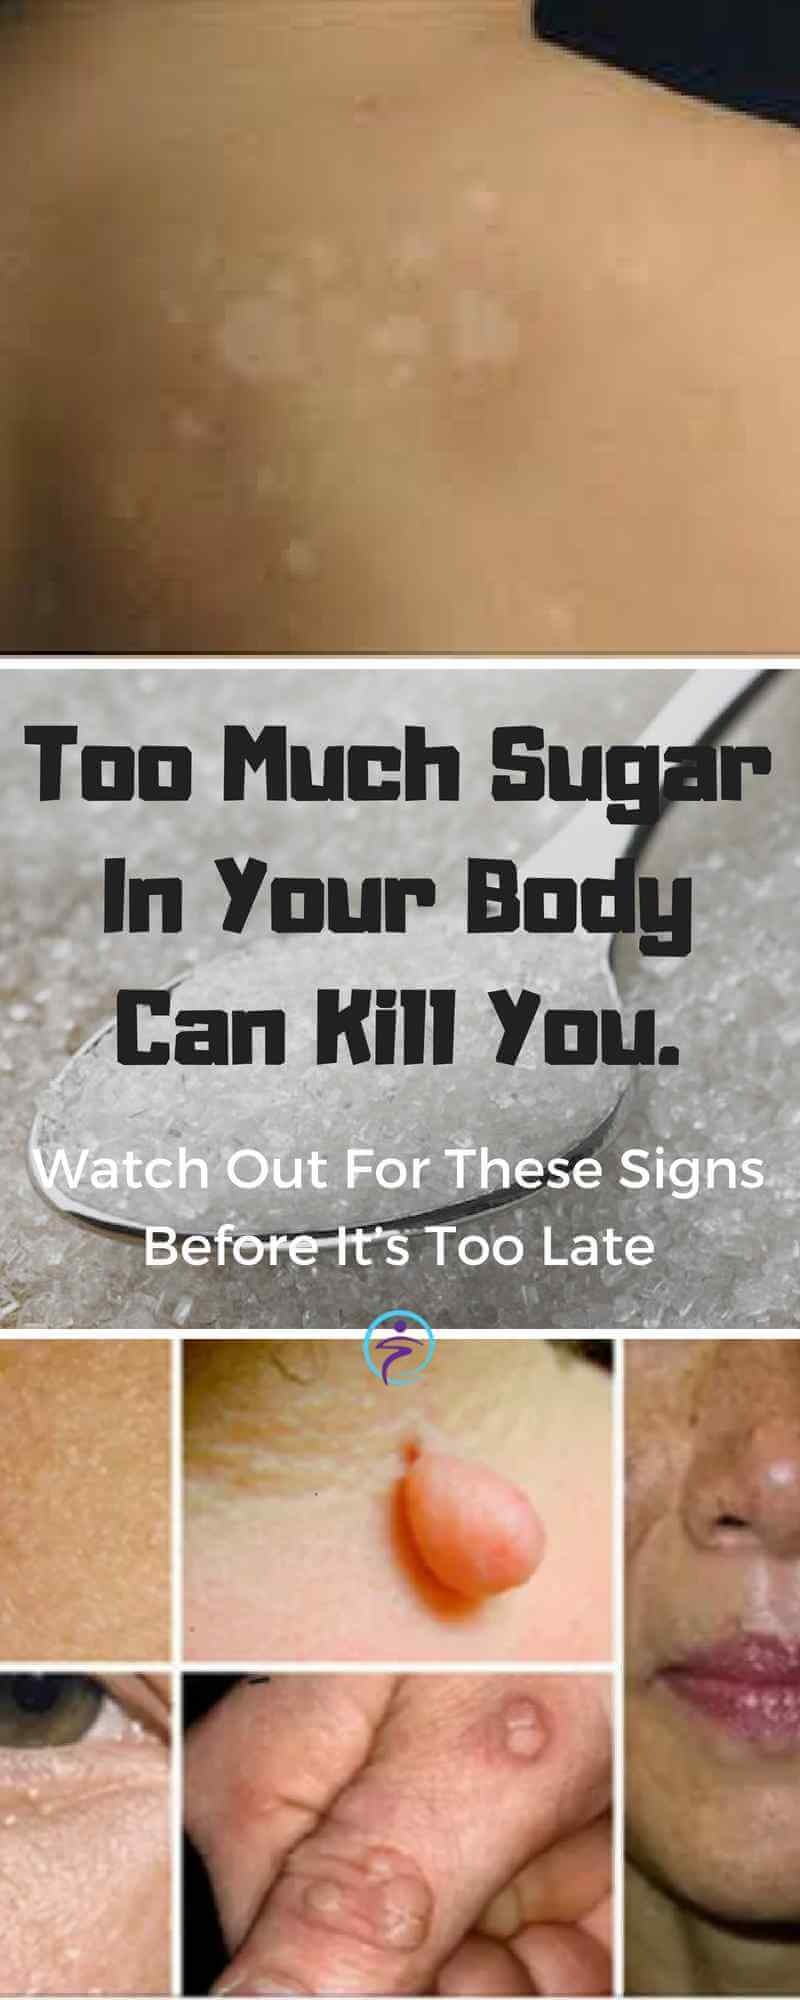 Too Much Sugar In Your Body Can Kill You. Watch Out For These Signs Before It's Too Late